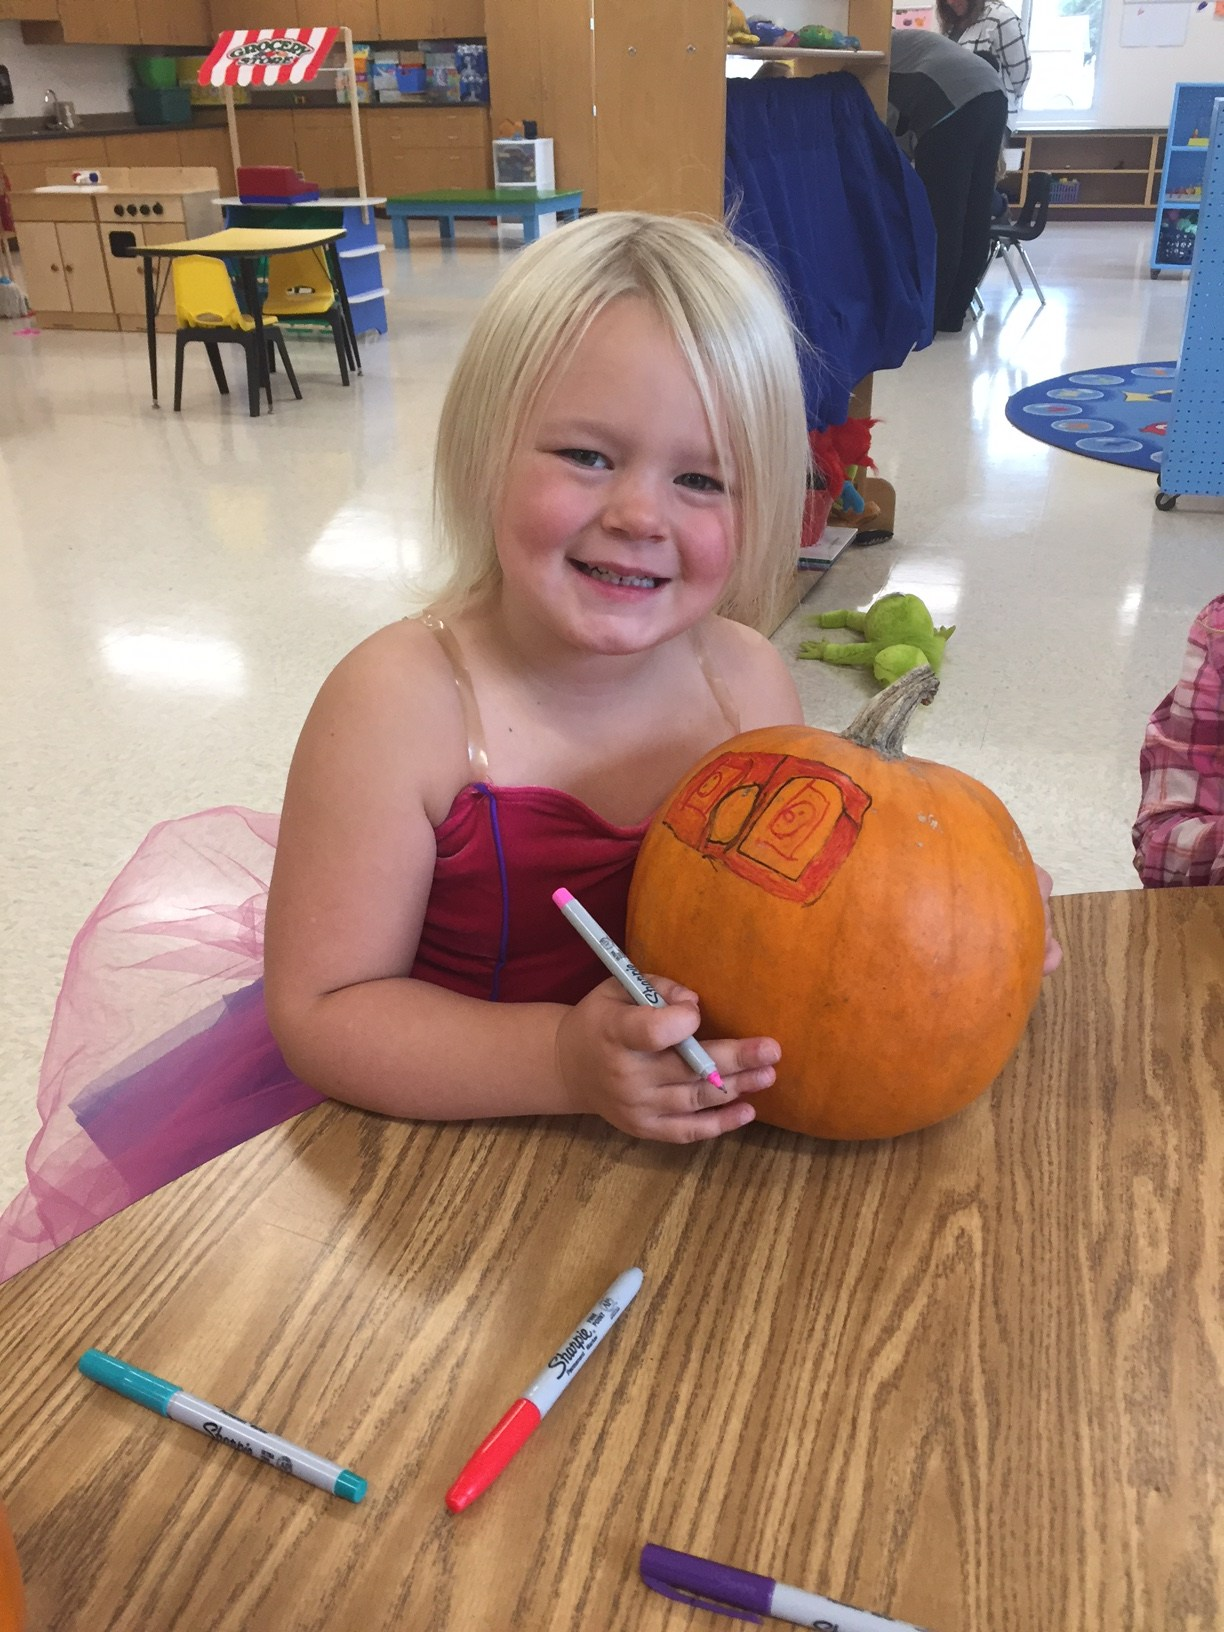 Coloring her pumpkin